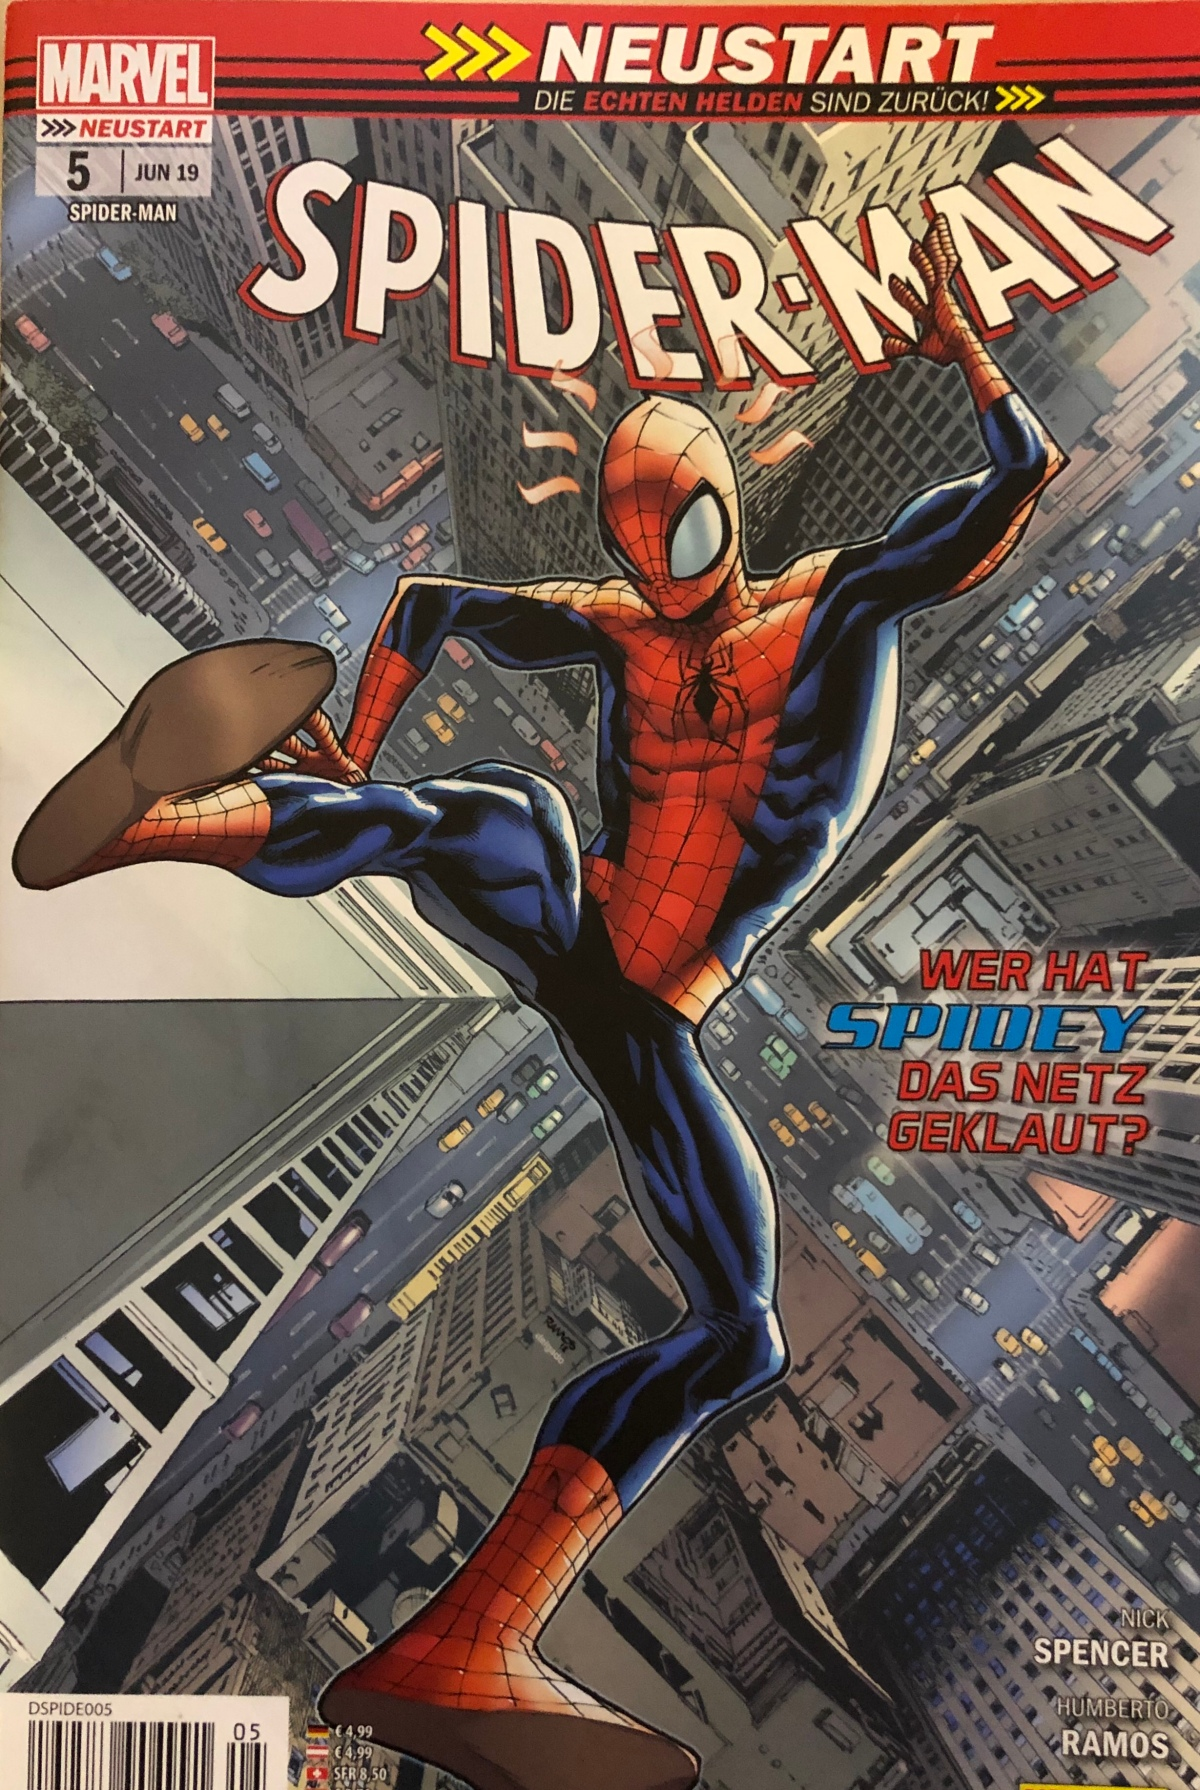 The Amazing Spider-Man #7 & #8 |Review